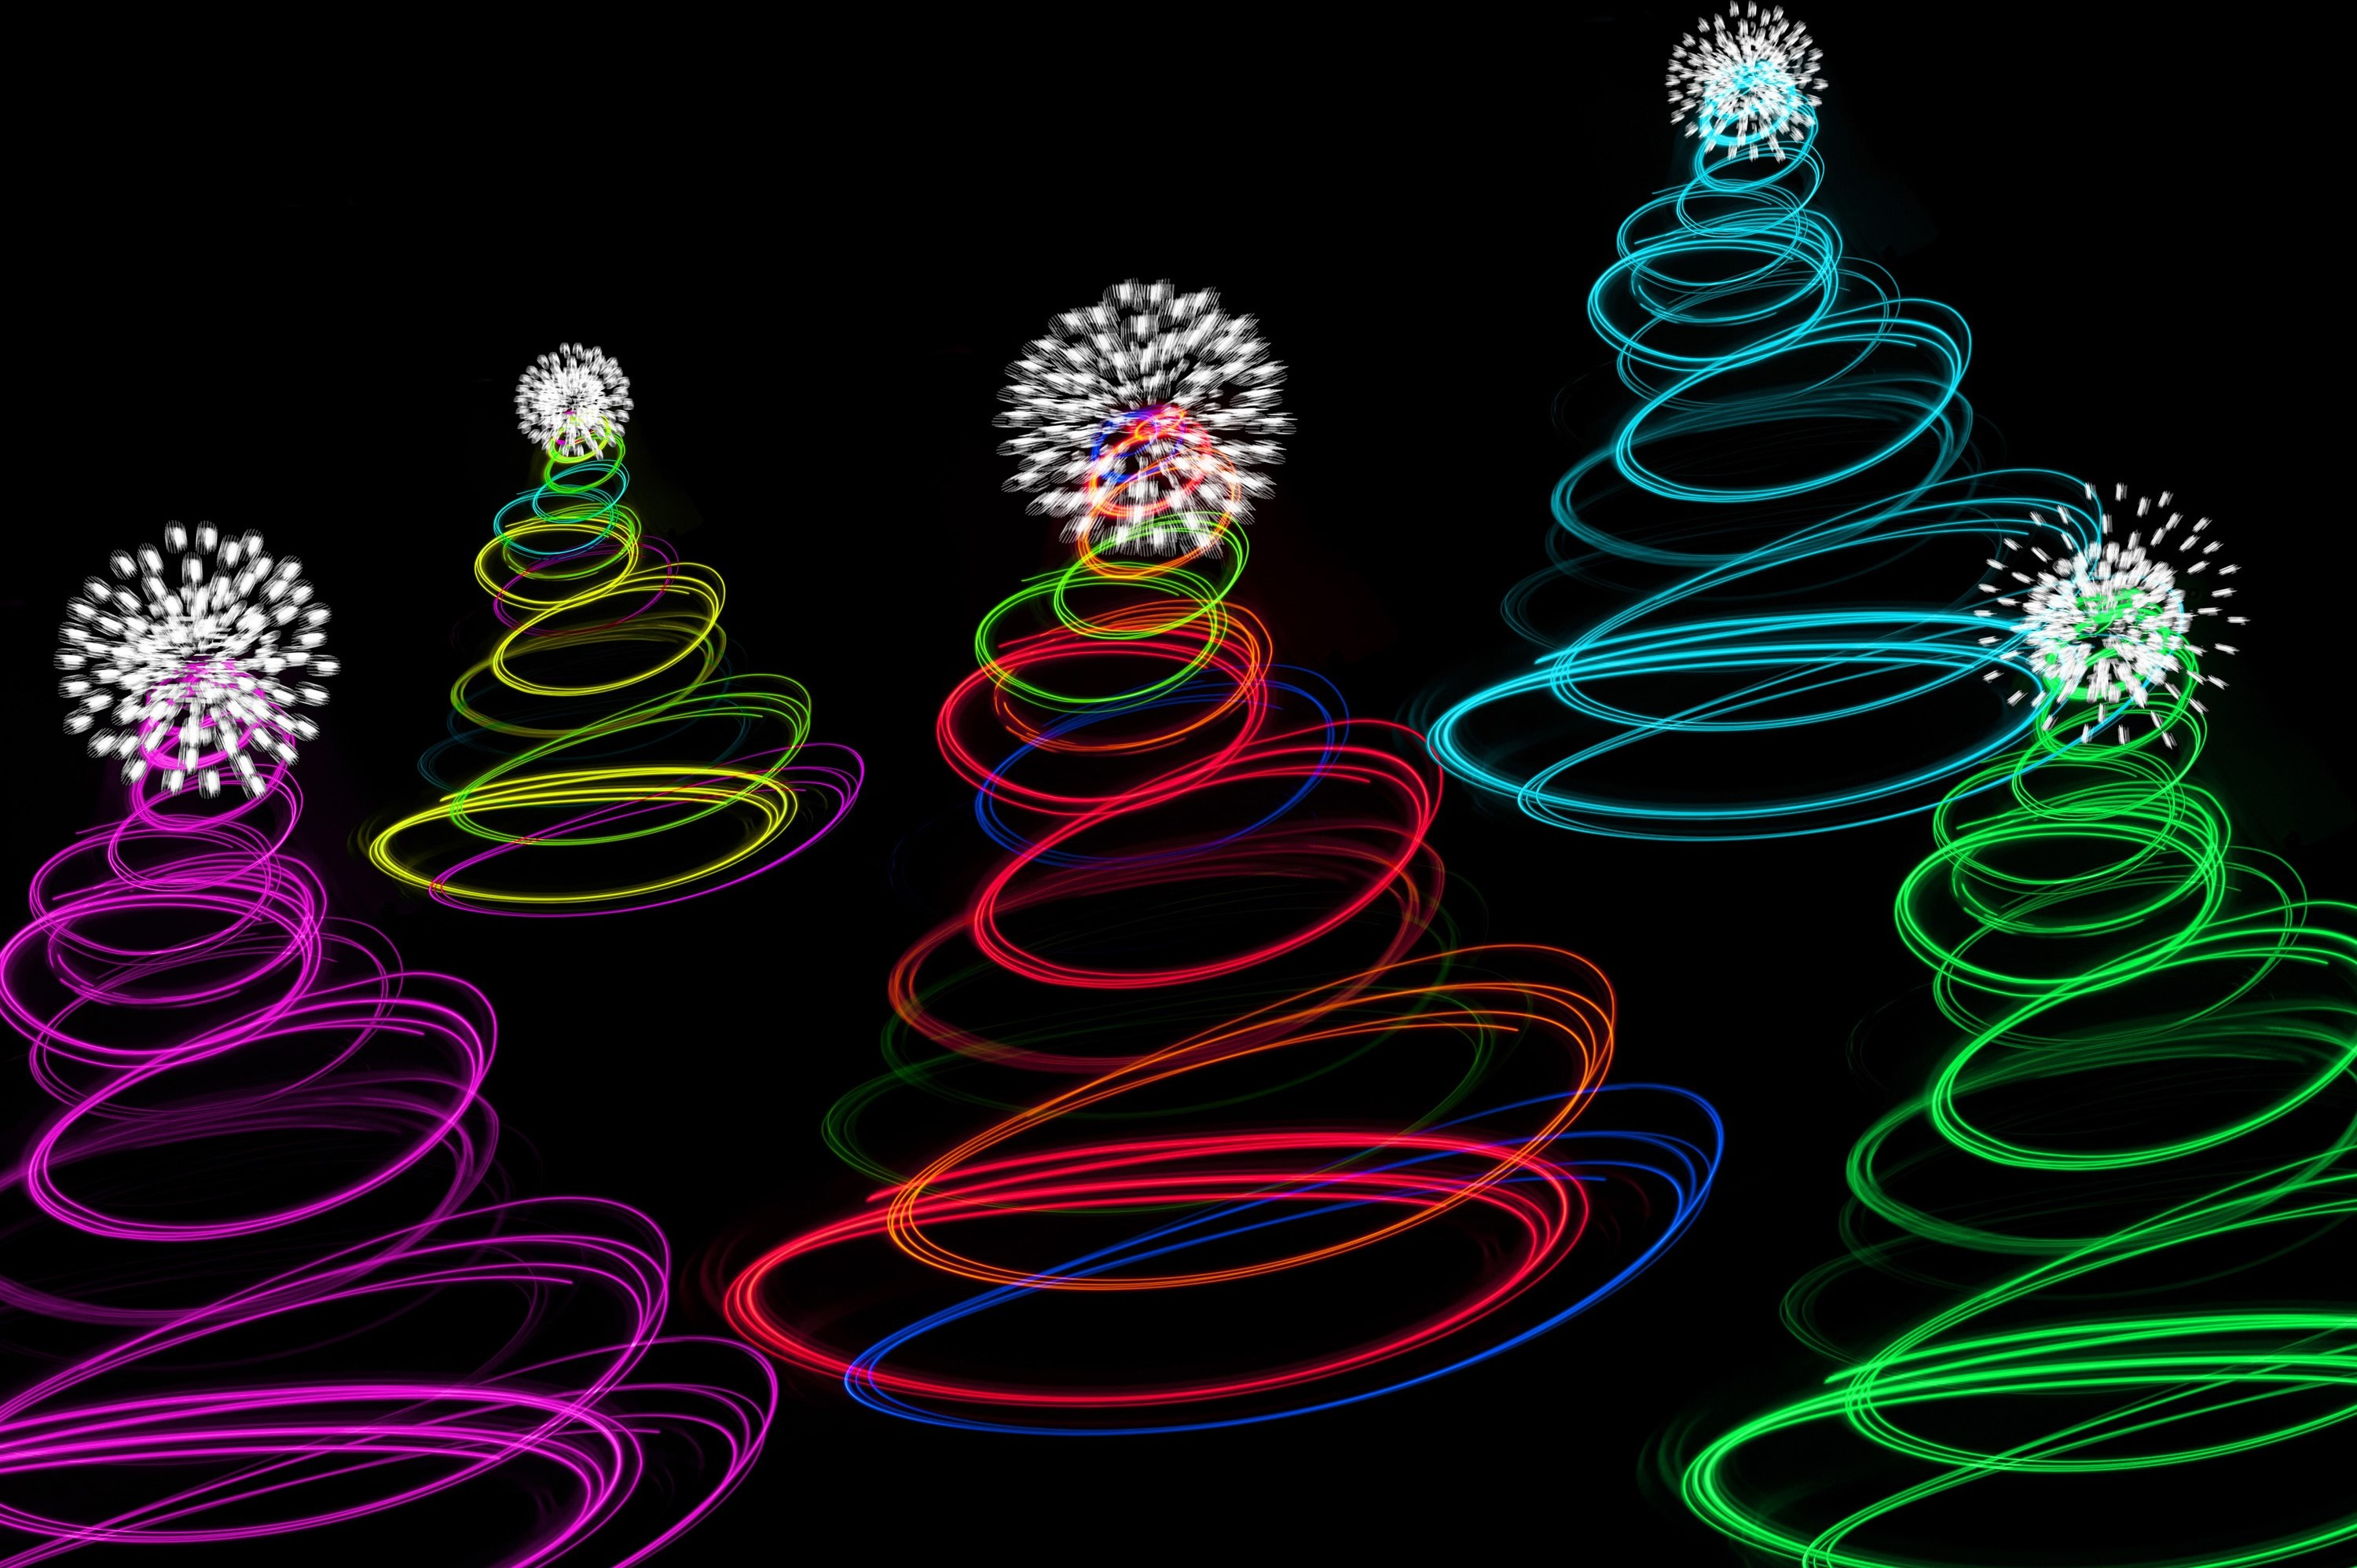 Abstract Christmas tree lights with a twirled shape and twinkling decorations on the top in the colours of the rainbow or spectrum on a black background